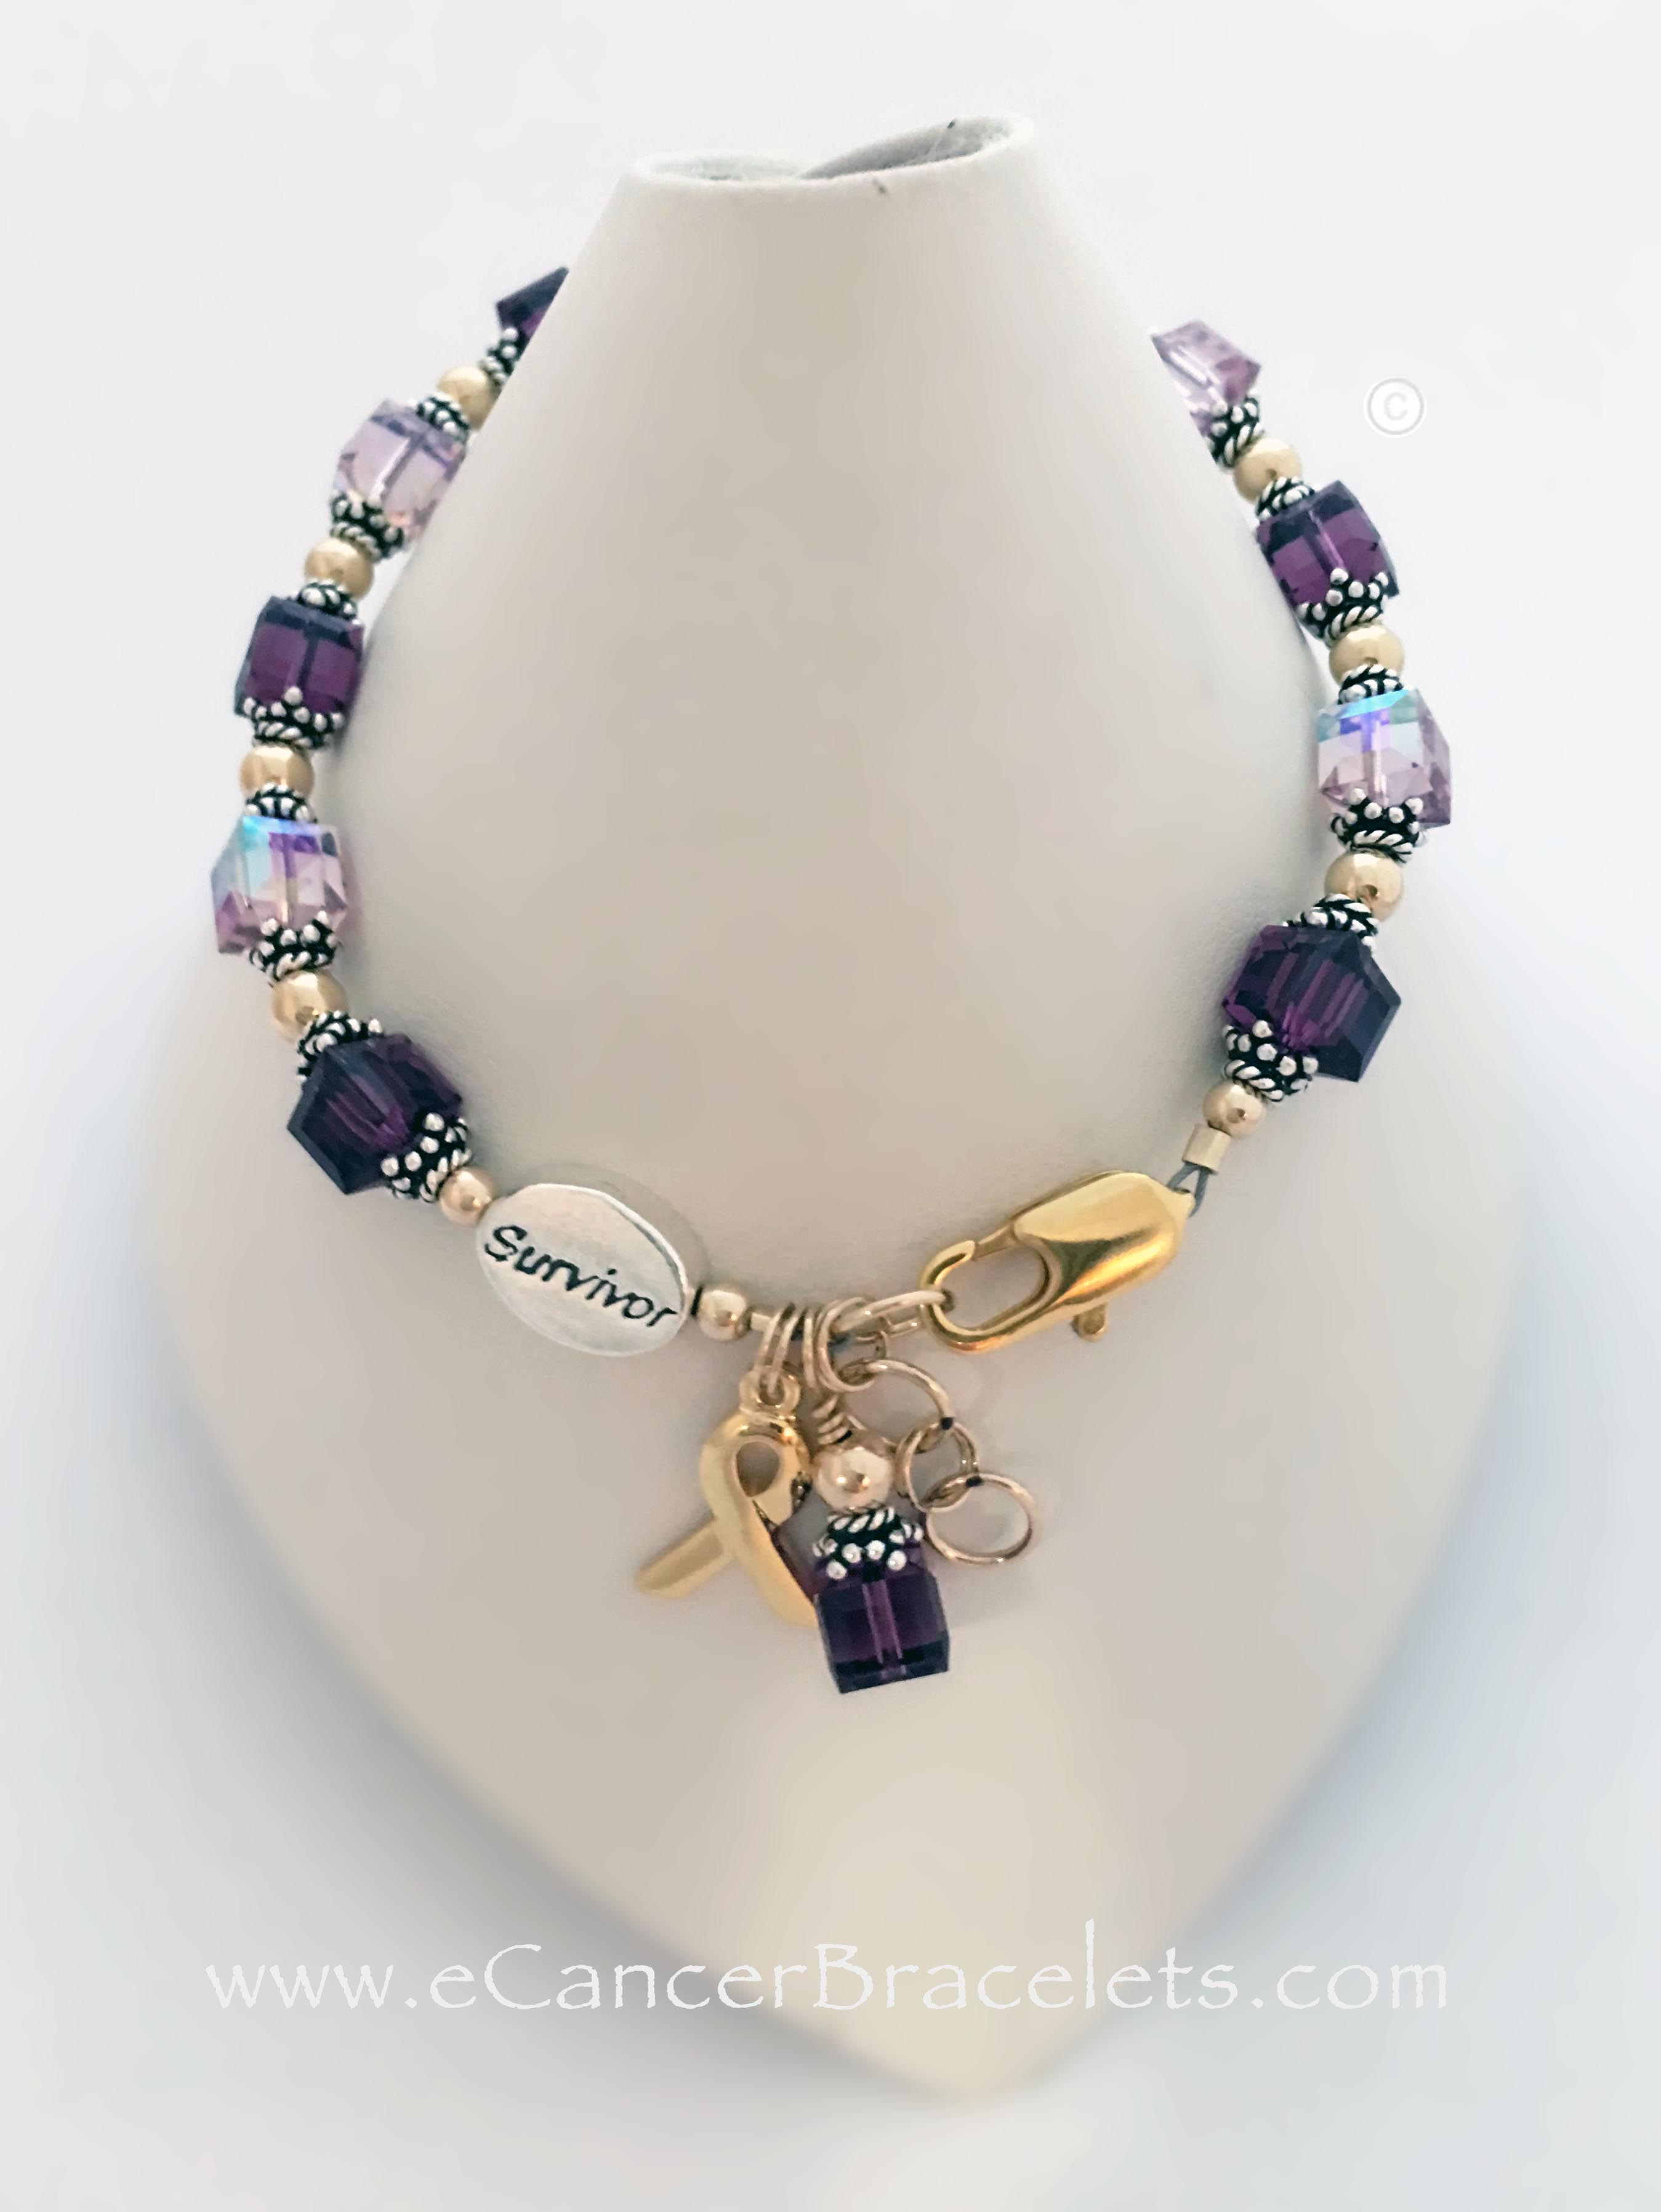 Lavender and Violet Ribbon Bracelet This bracelet comes with 2 charms; ribbon and dangle. They added a SURVIVOR bead, Coordinating Earrings and a Gold Lobster Extension Claps.